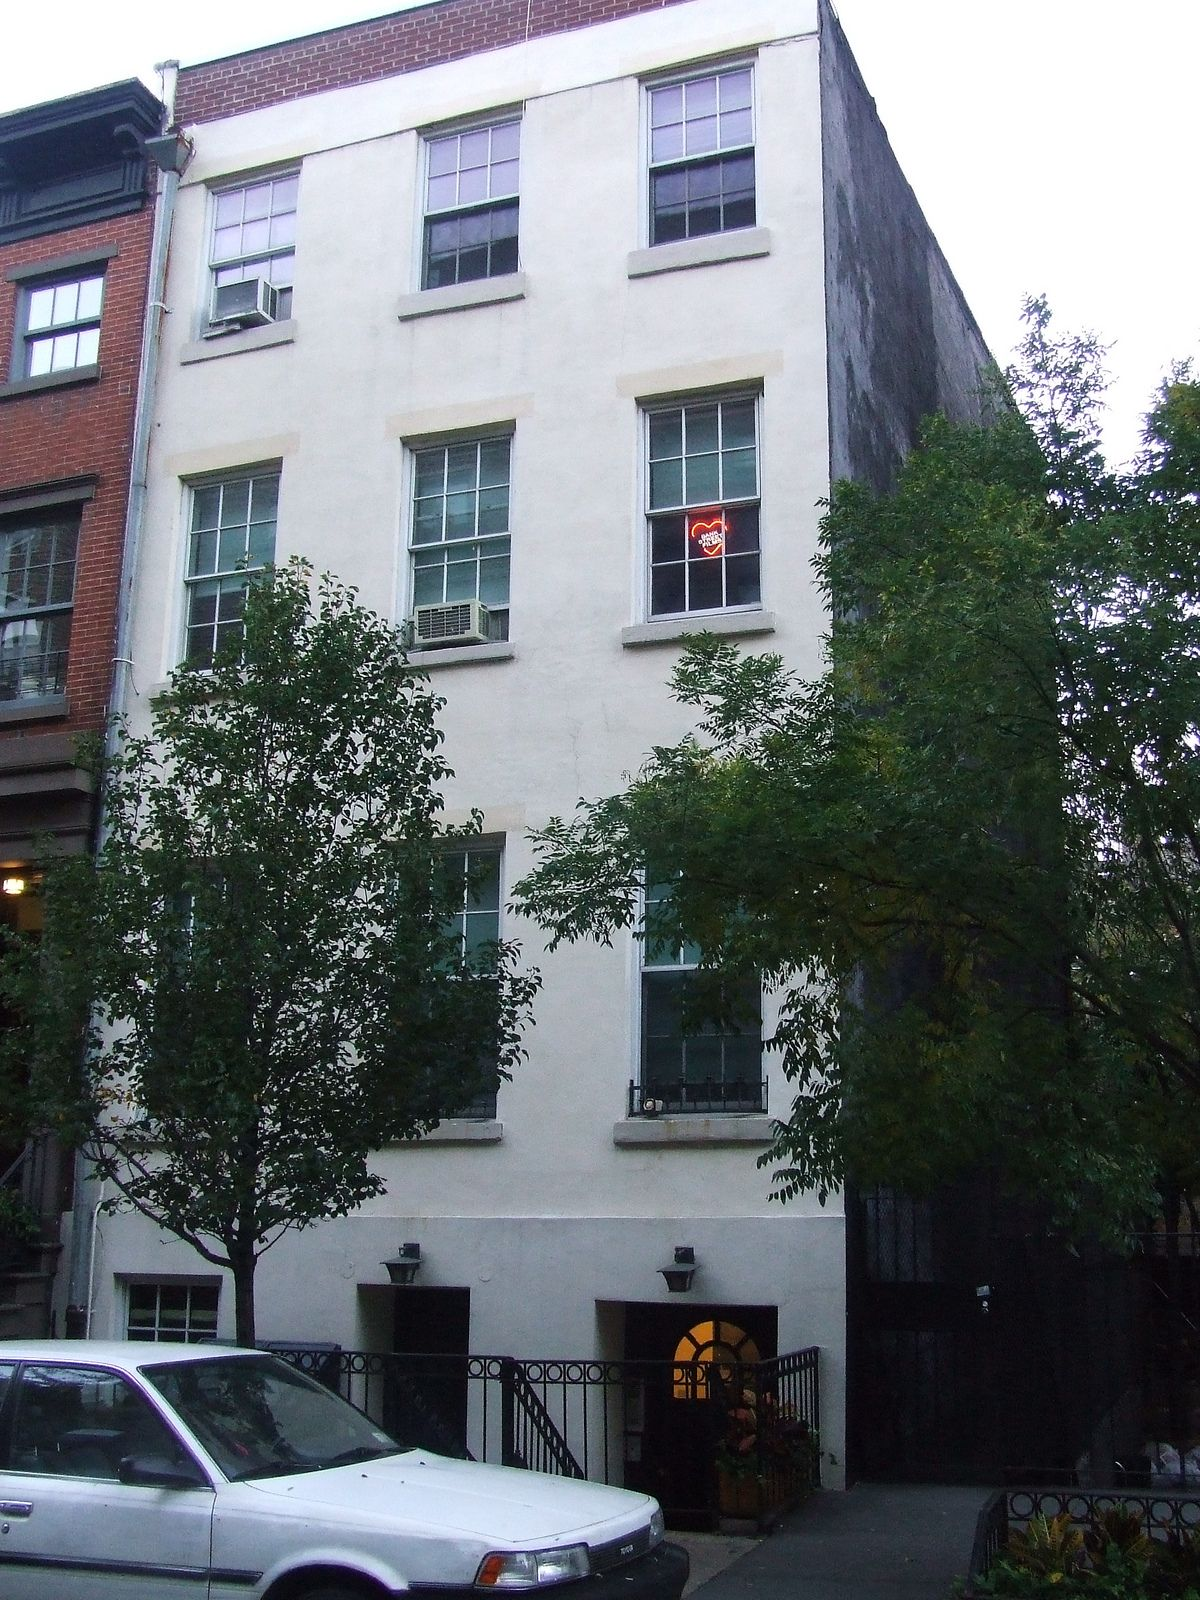 The Second Nyc Residence Of John Lennon And Yoko Ono This Apartment In Greenwich Village Was Center A Growing Art Music Culture